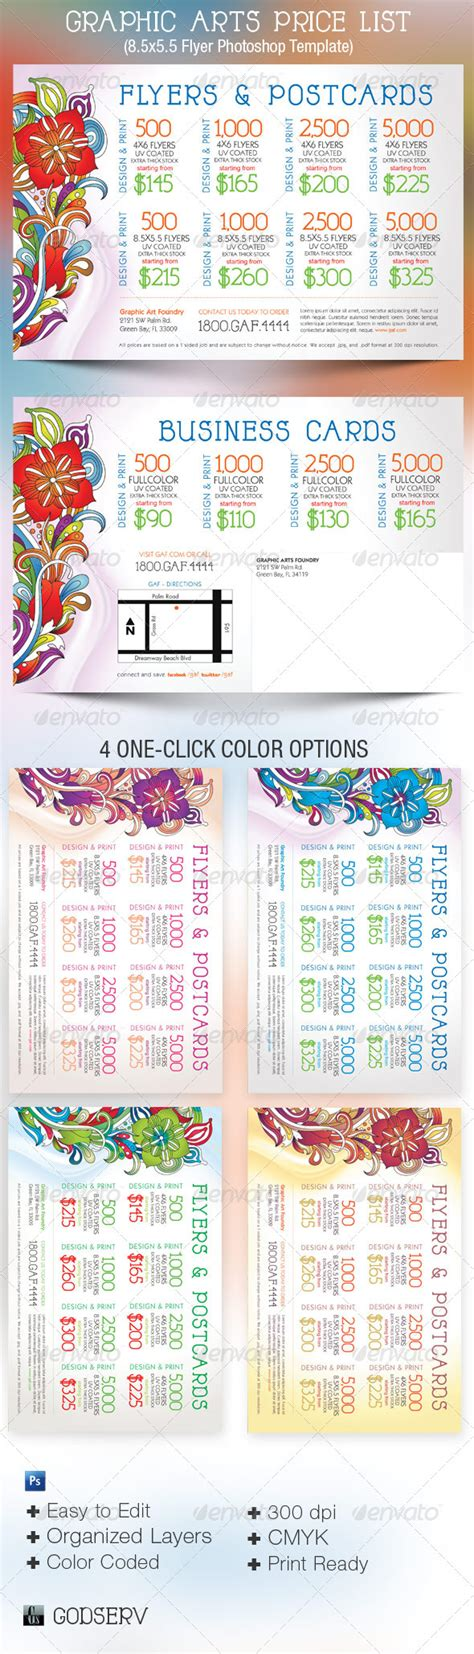 average flyer design graphic cost price graphic arts price flyer and postcard template graphicriver